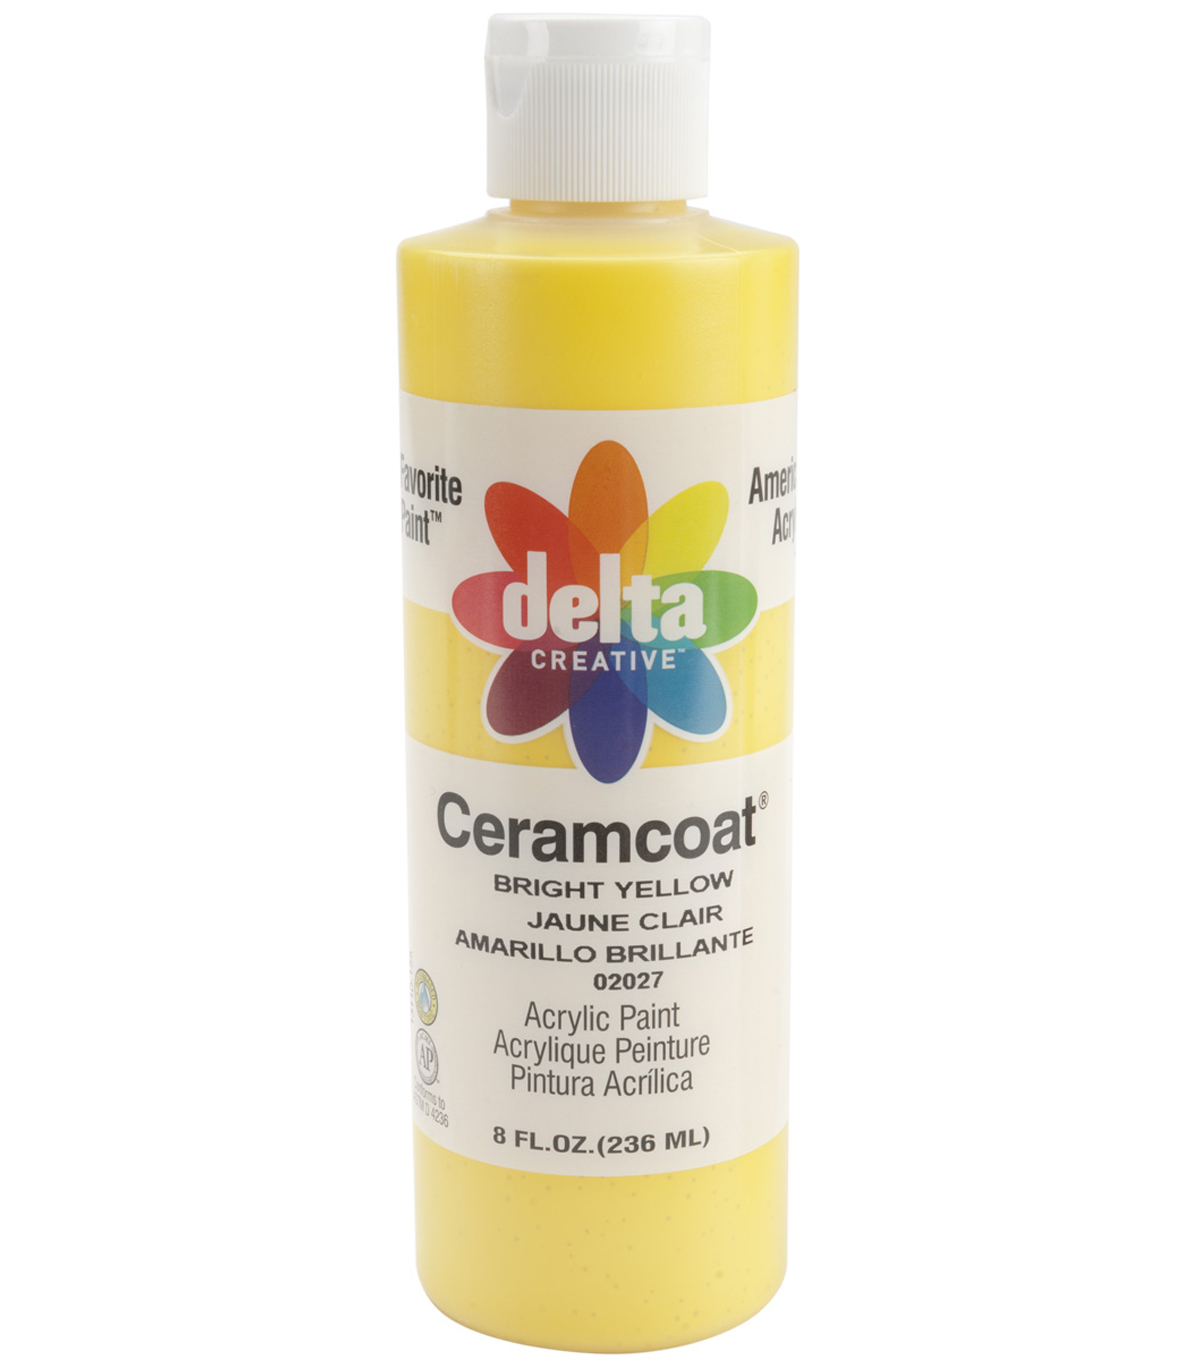 Delta Ceramcoat 8 fl. oz. Acrylic Paint, Transparent Bright Yellow